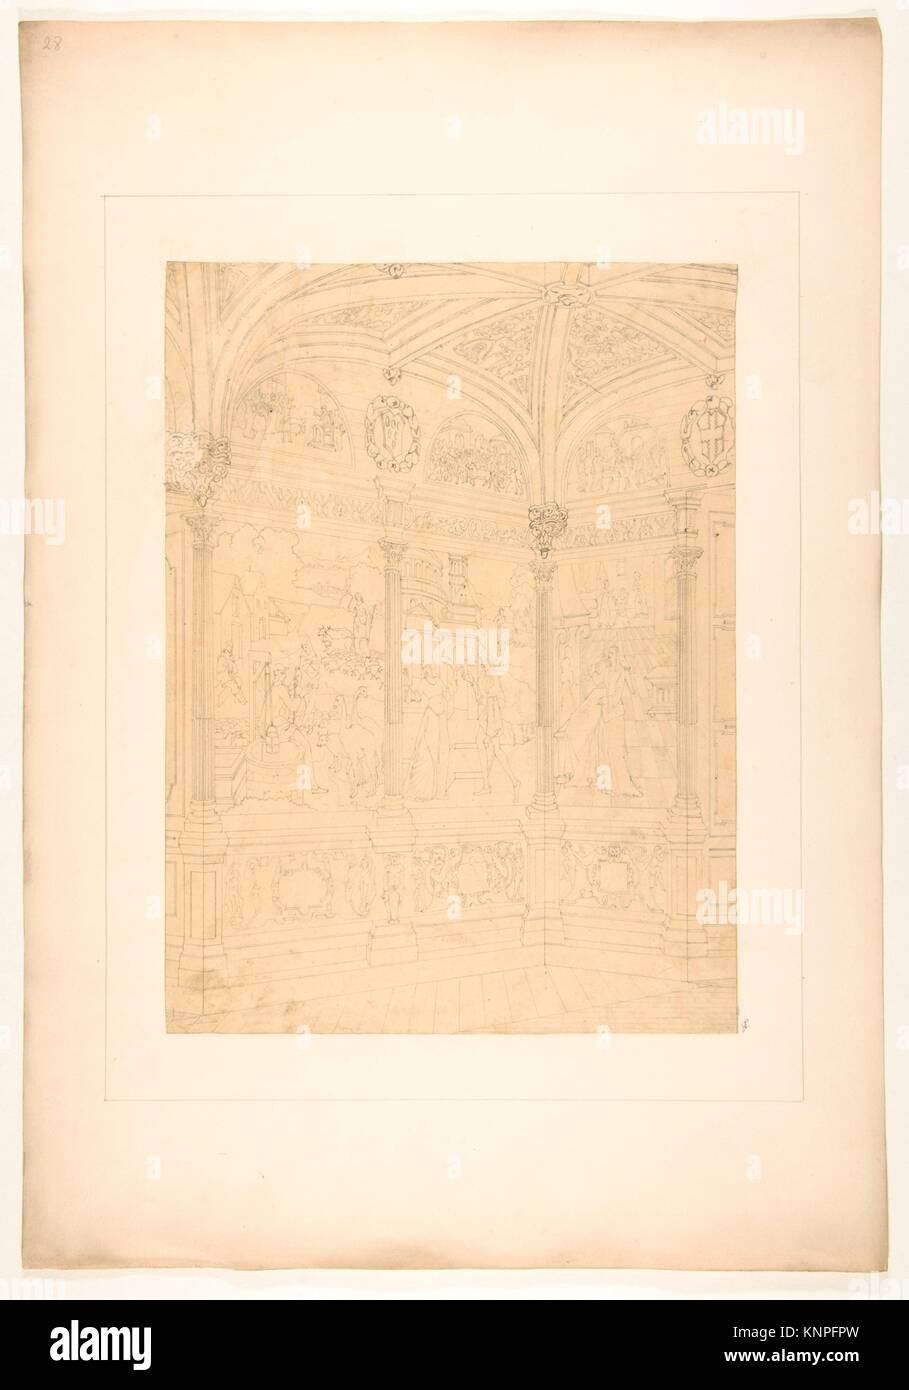 Elevation of the corner of a room decorated with Renaissance-style murals and carved woodwork. Artist: Jules-Edmond - Stock Image